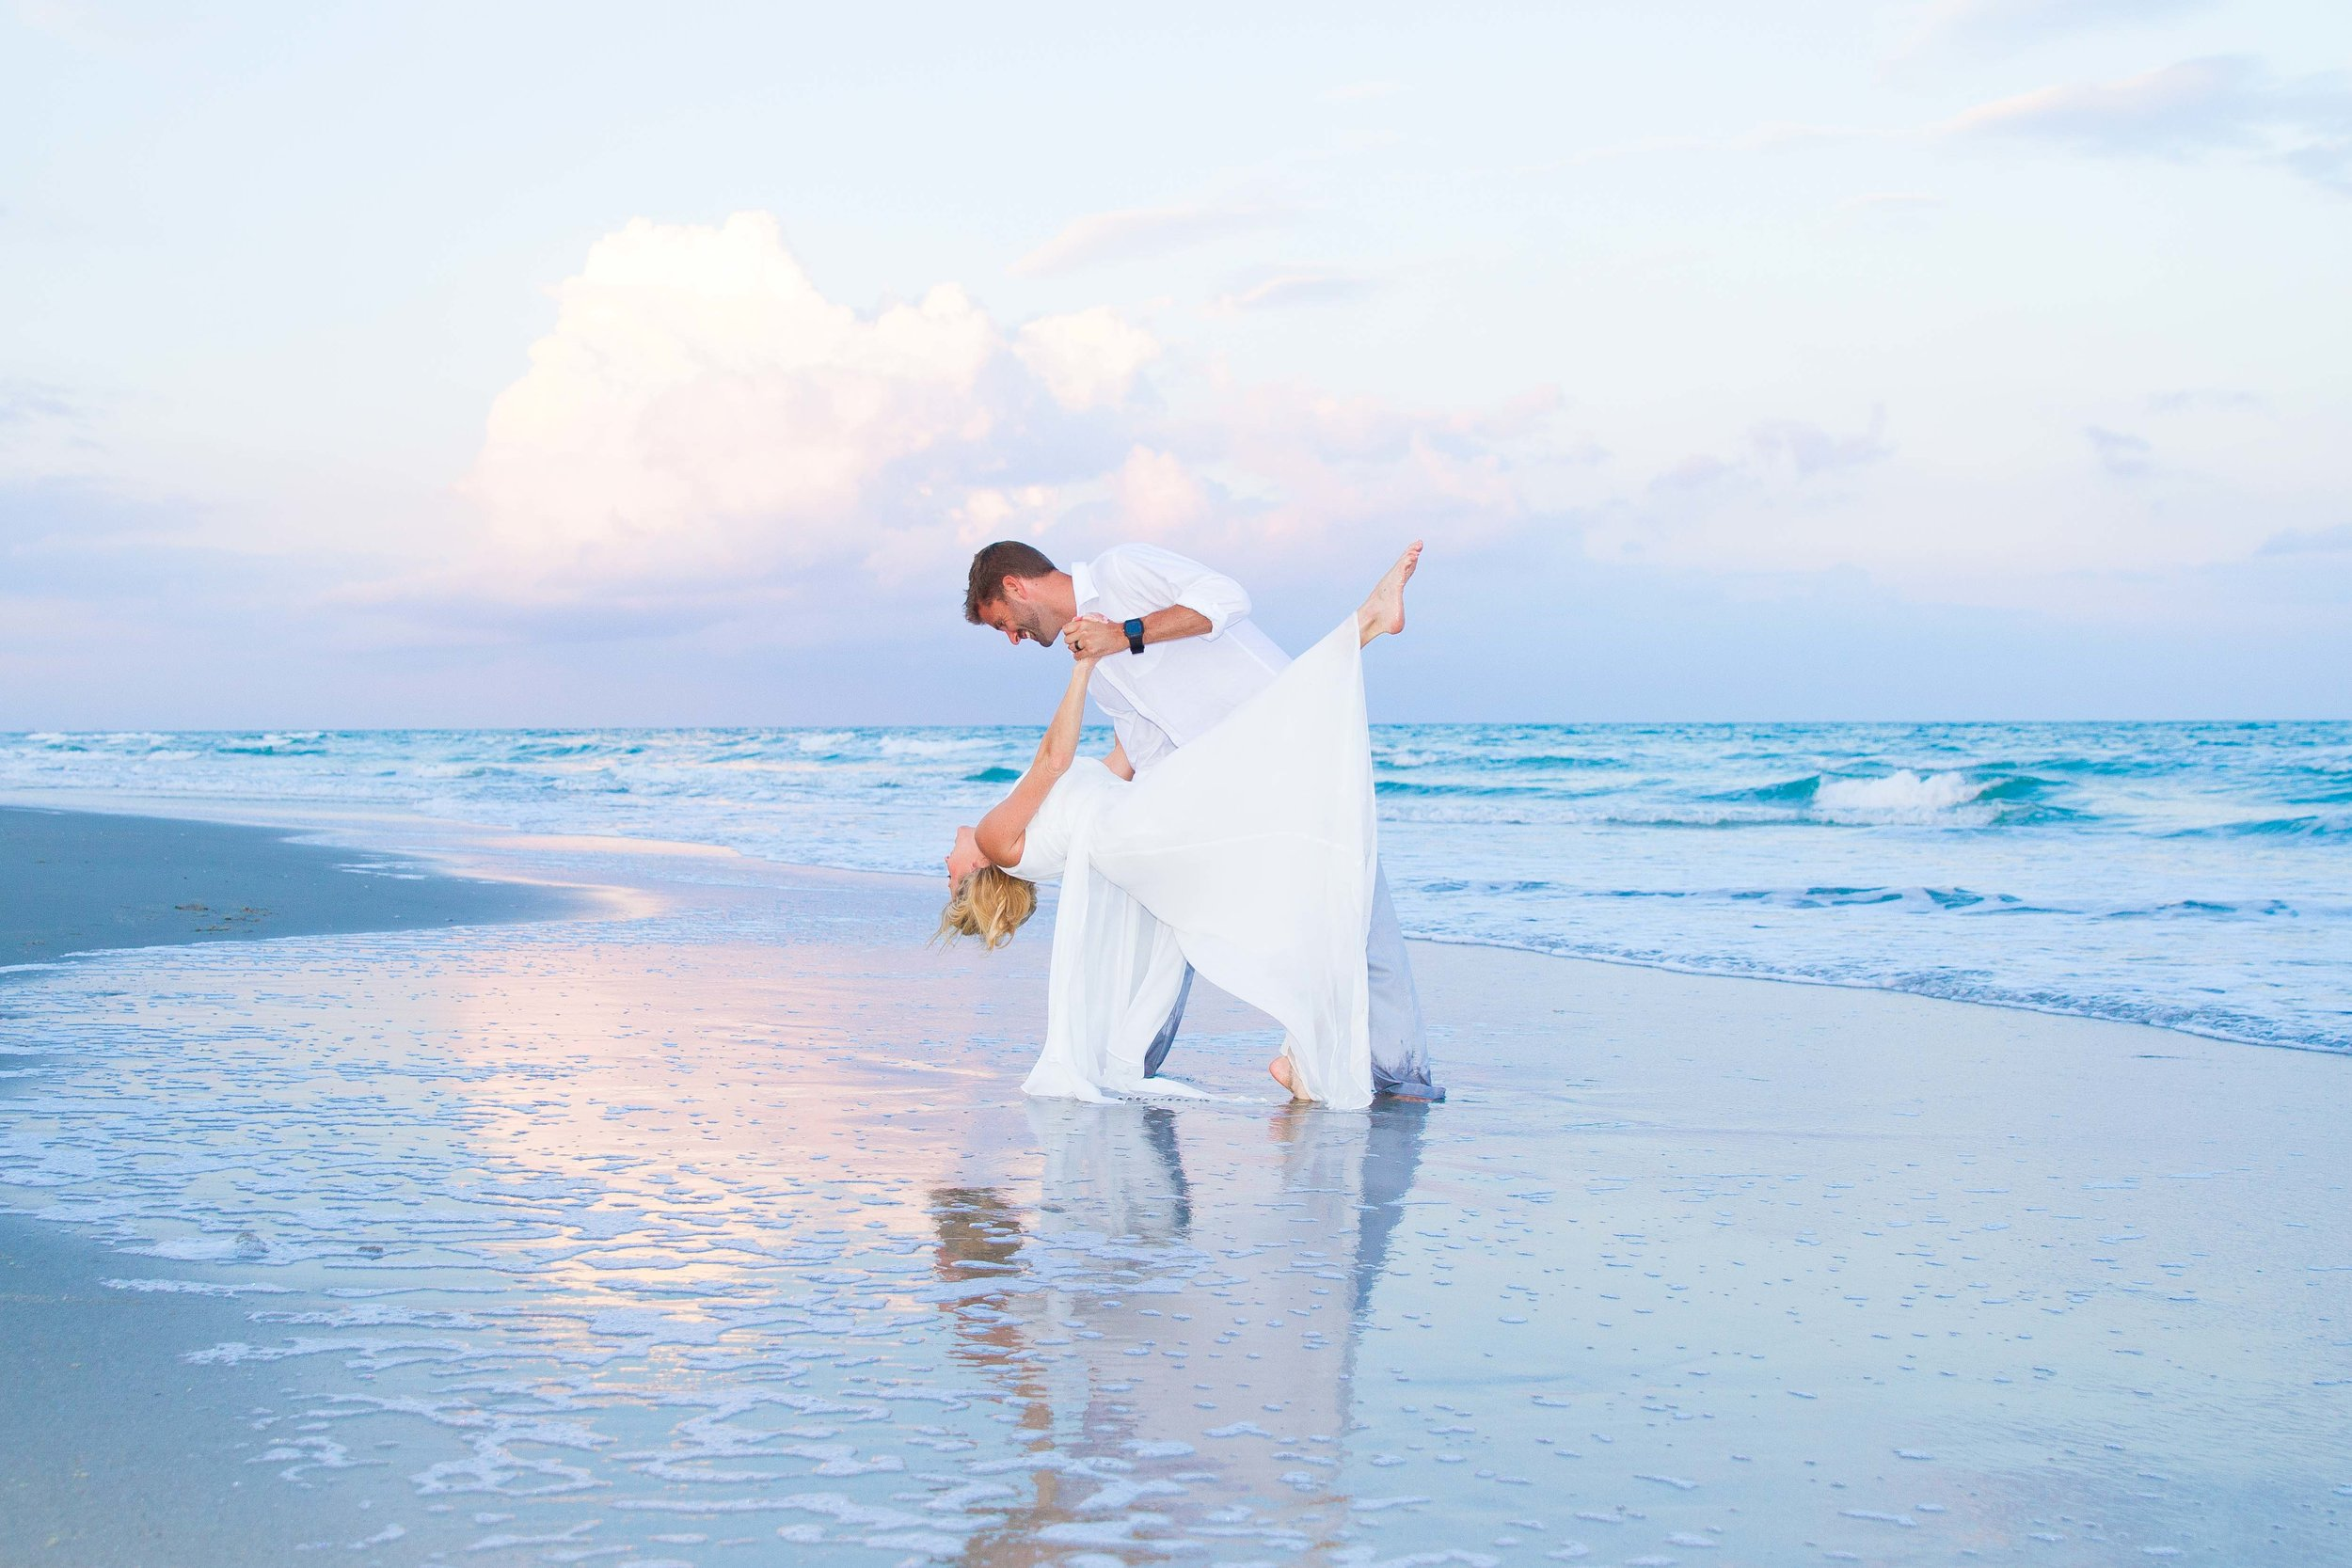 Husband dips his new wife while dancing on the blue beach